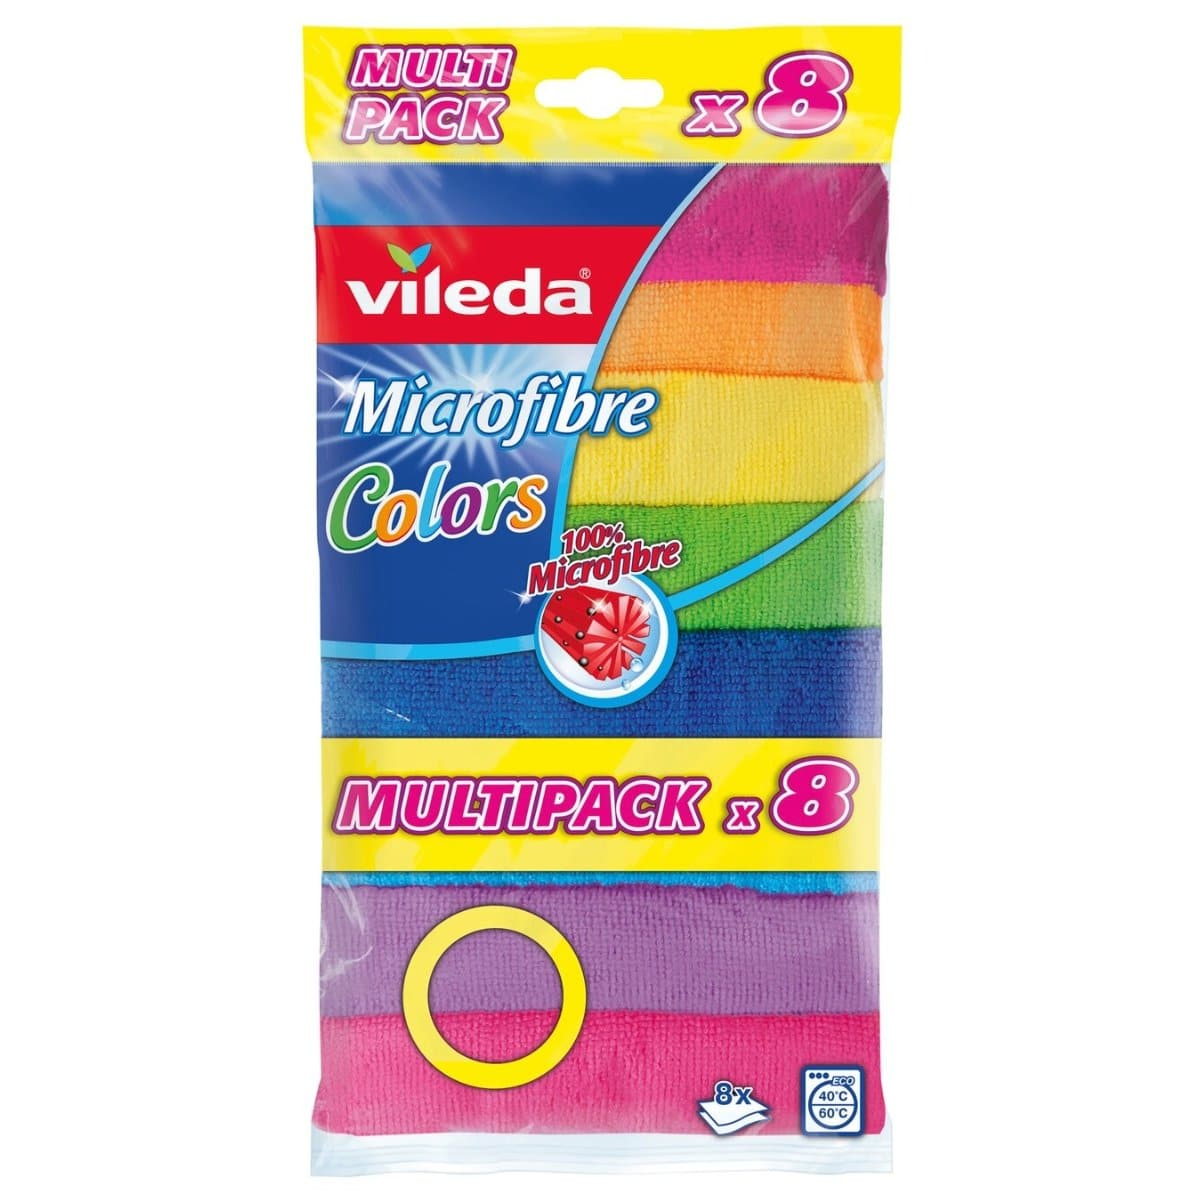 Vileda Microfibre Cloth, 30 x 30 cm, 8/pack, assorted colors